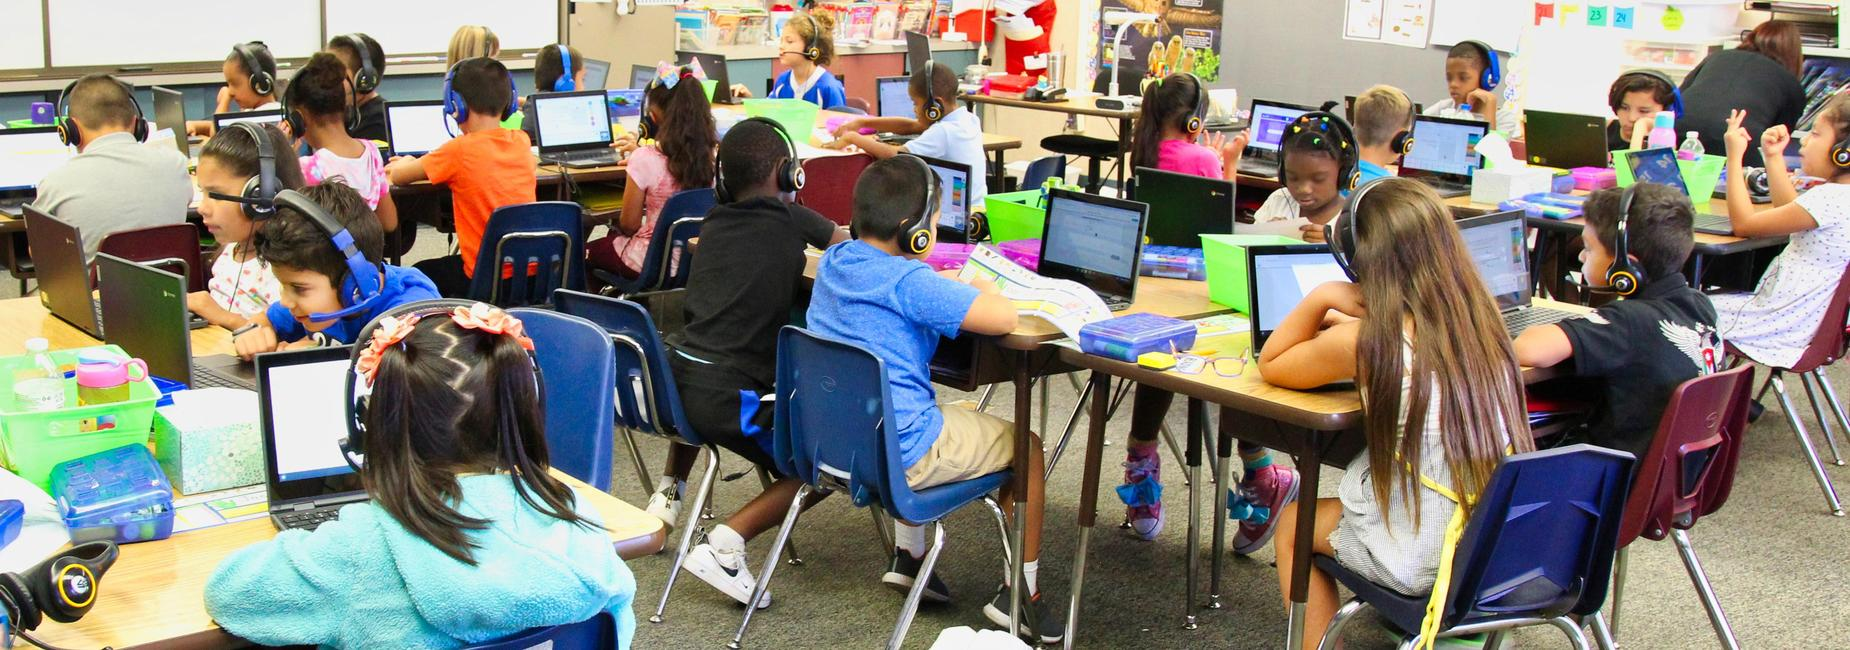 Students learning on computers